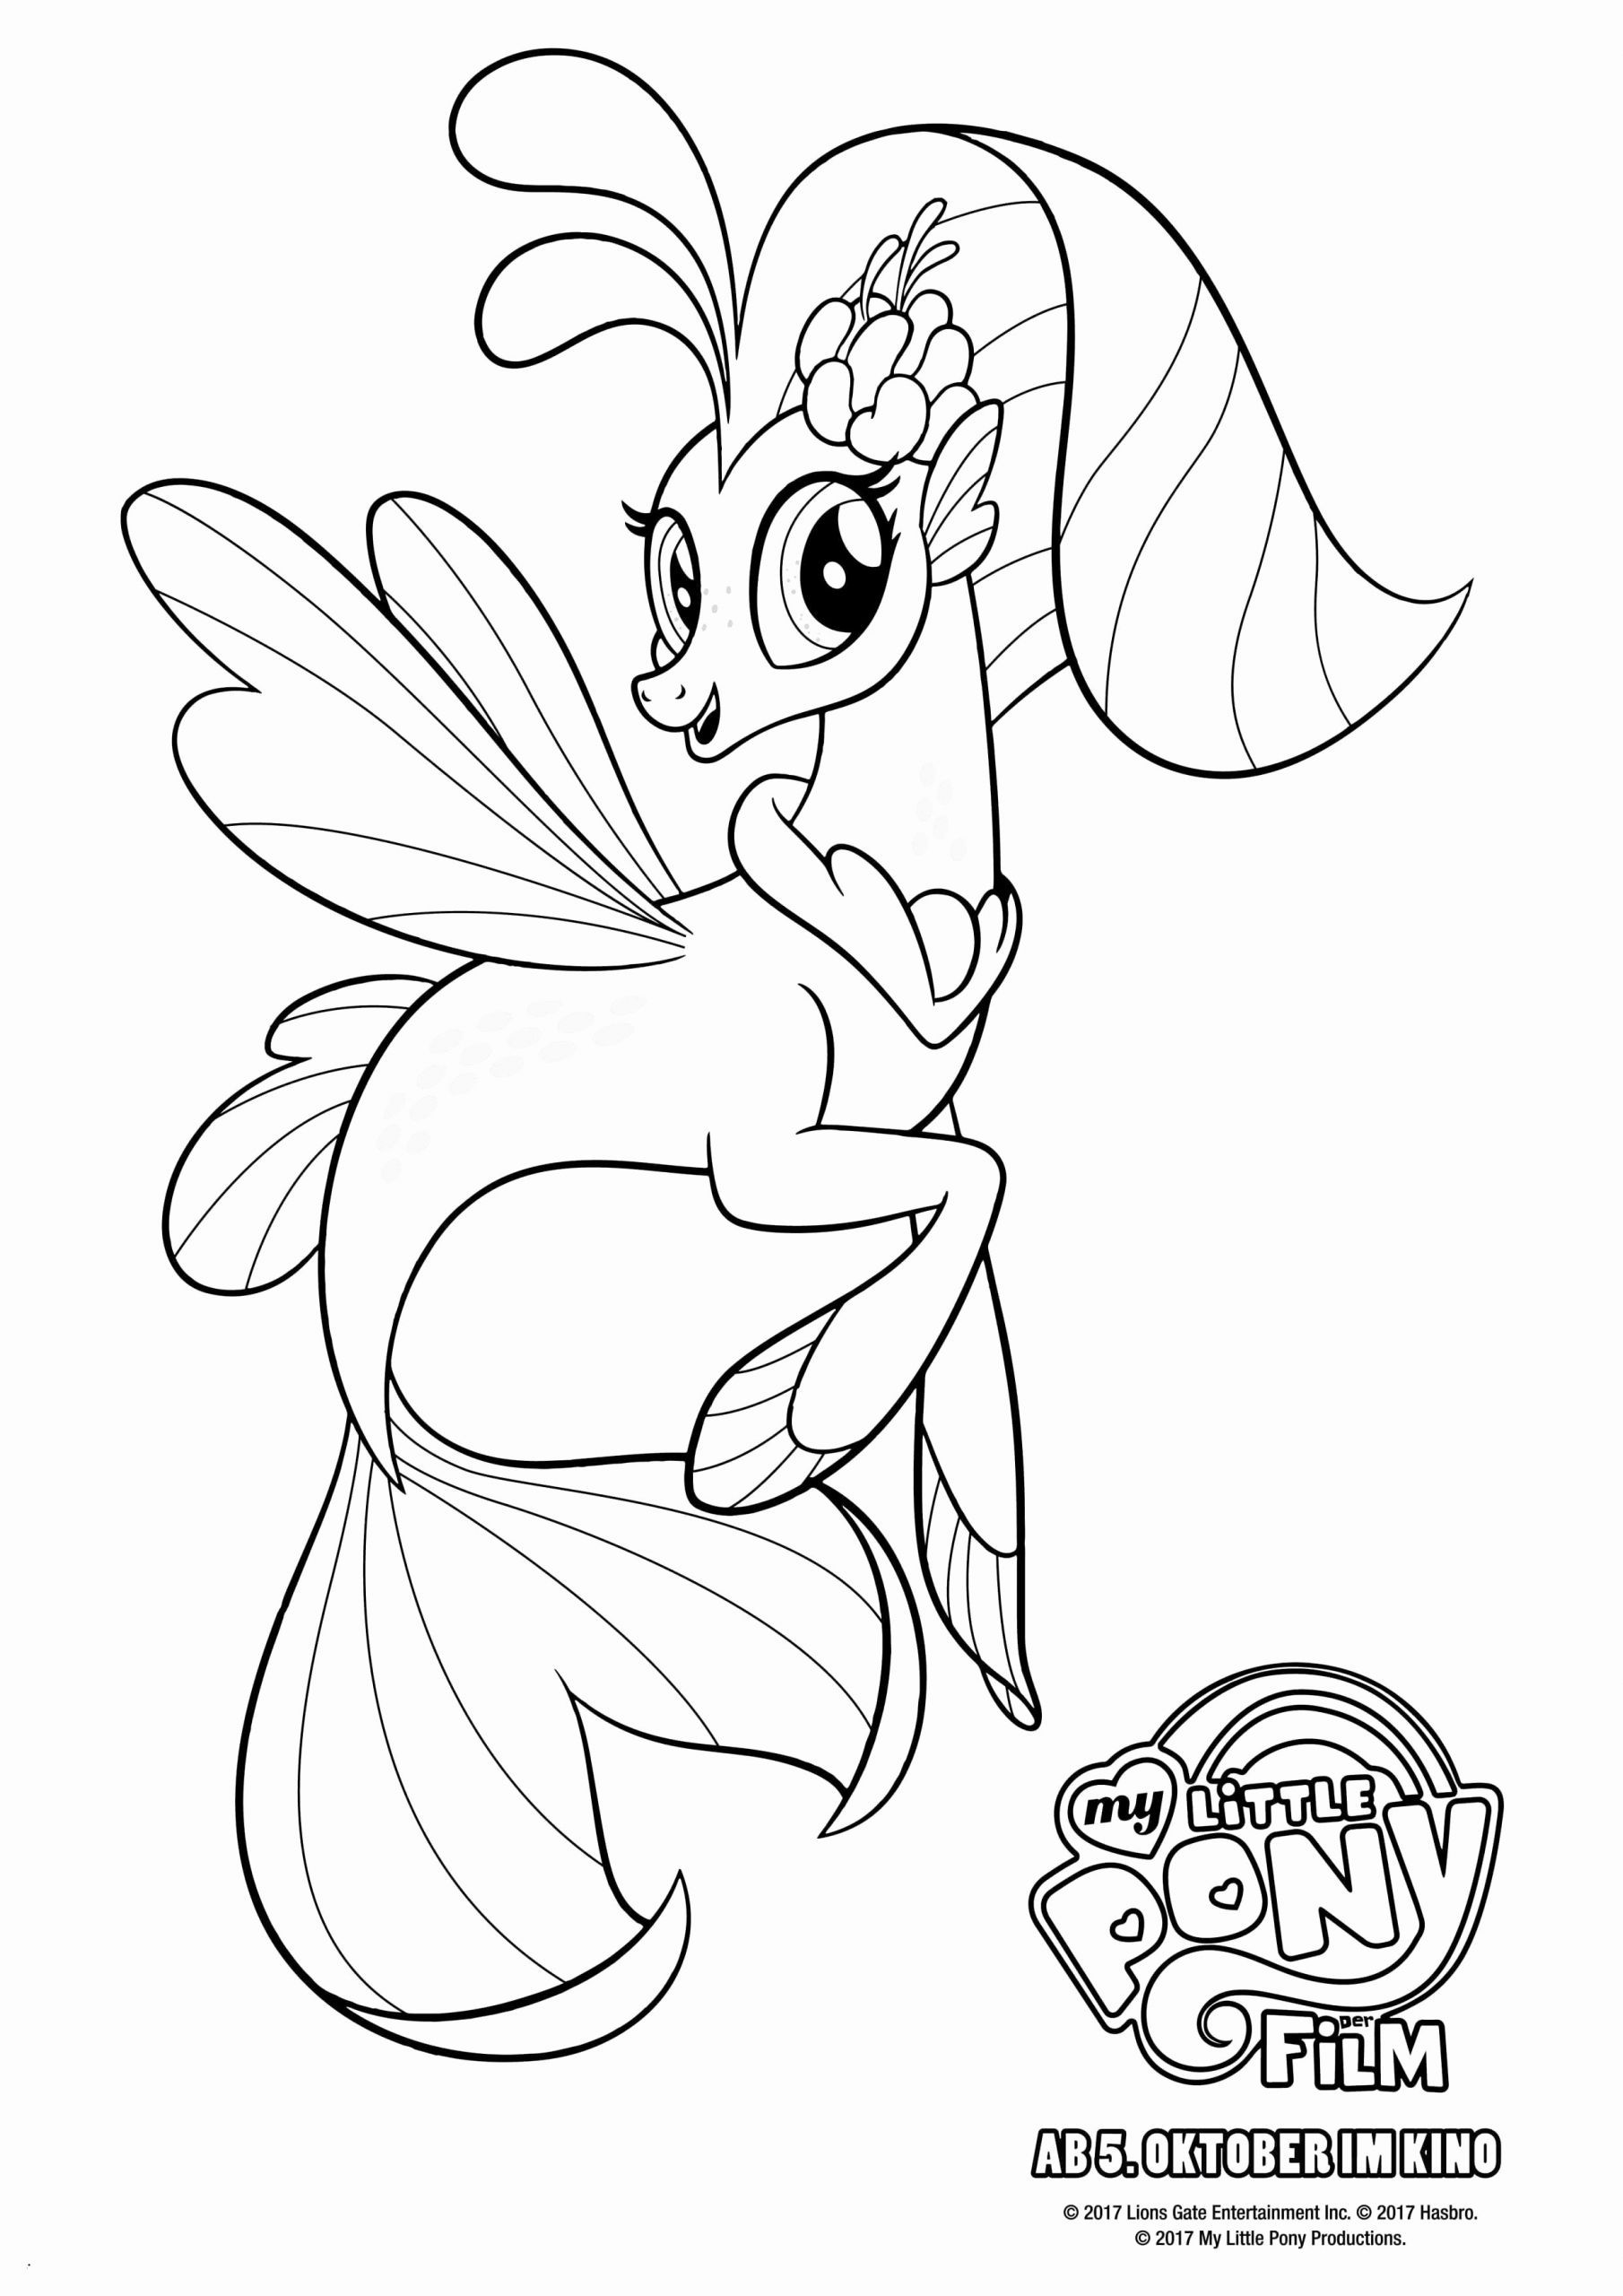 Pin By Ririn Mollie On Pony Drawing My Little Pony Coloring Mermaid Coloring Pages My Little Pony Printable